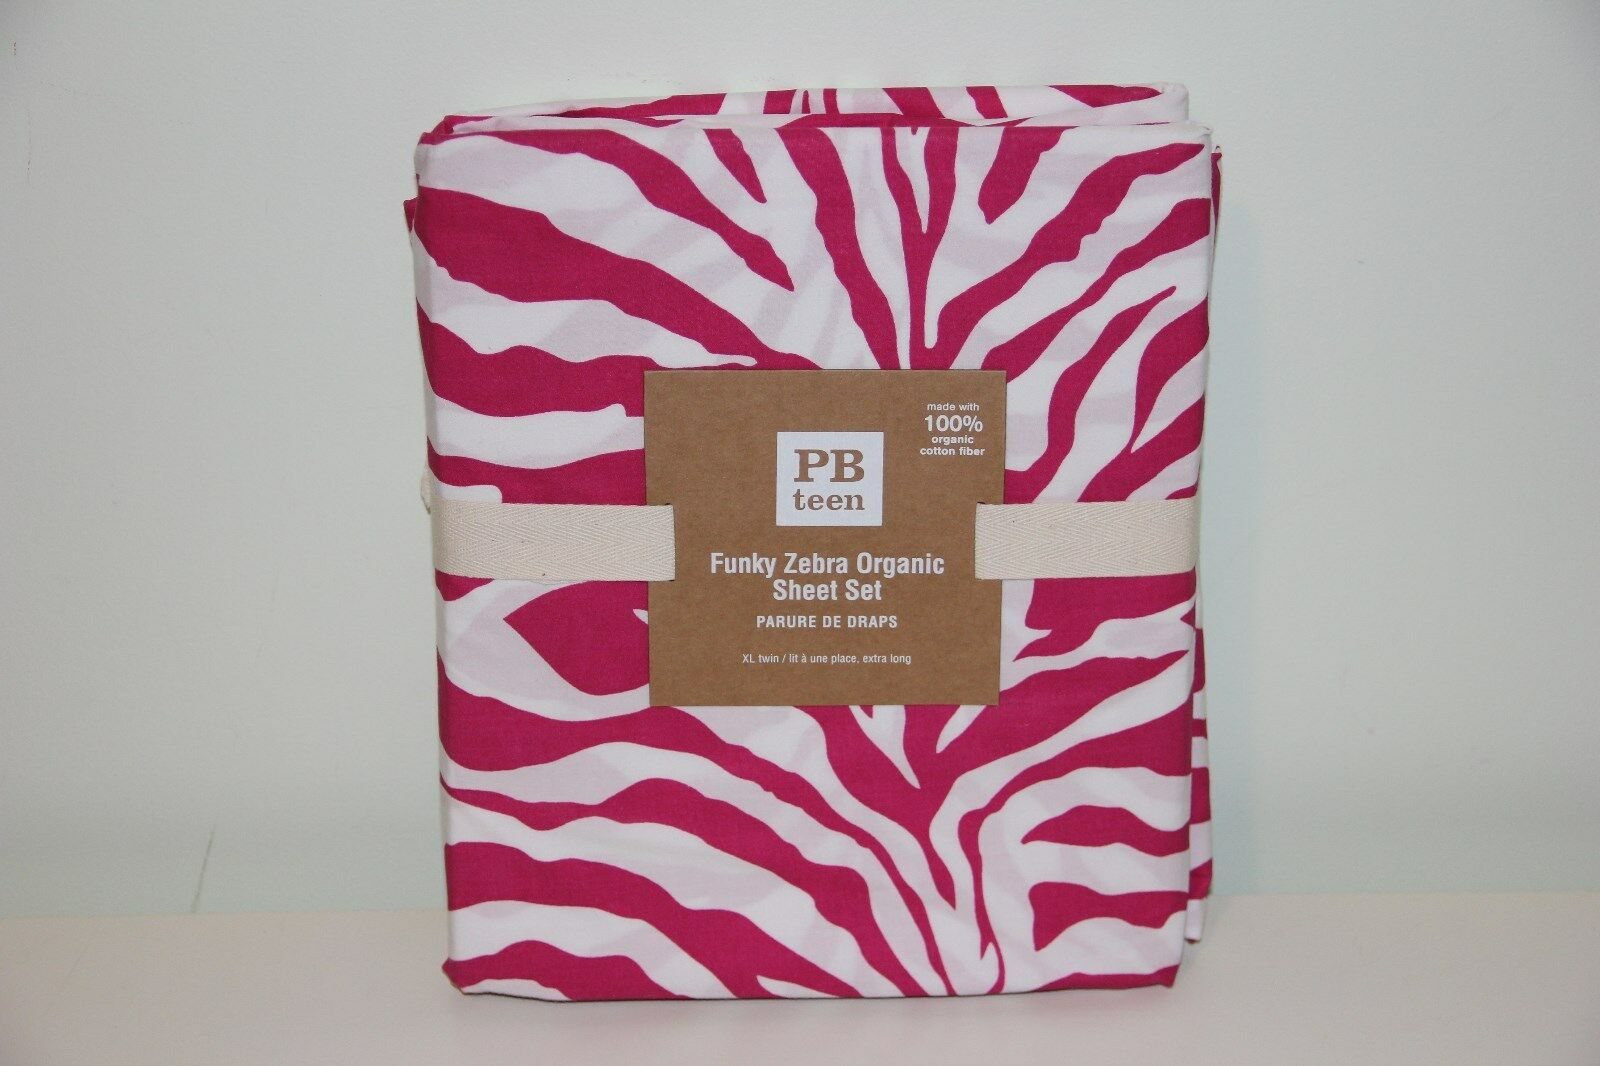 Nouveau  POTTERY BARN Teen Funky Zebra Organic XL Twin Sheet Set Rose Sold Out